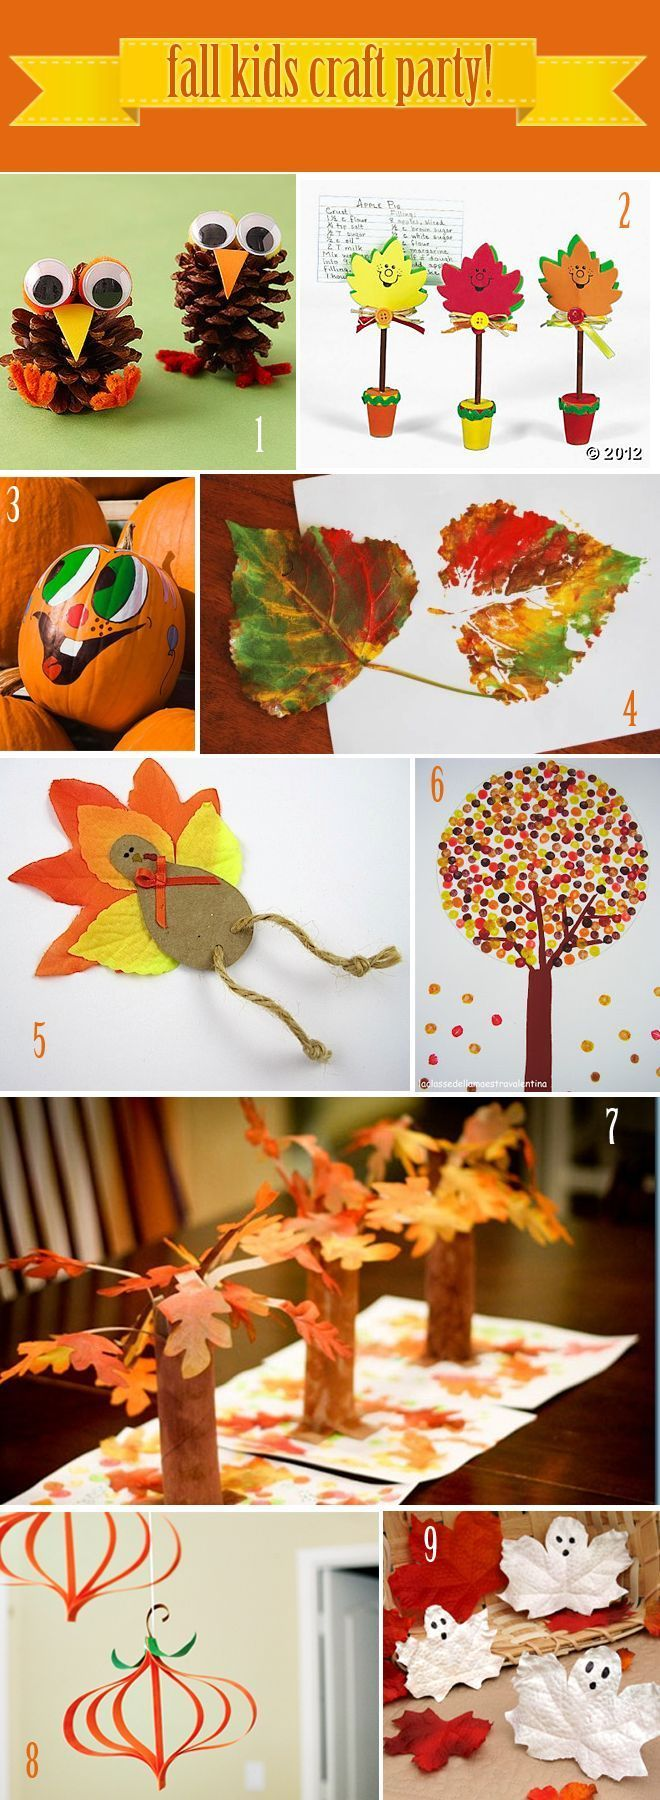 9 Fall Craft Ideas For Kids